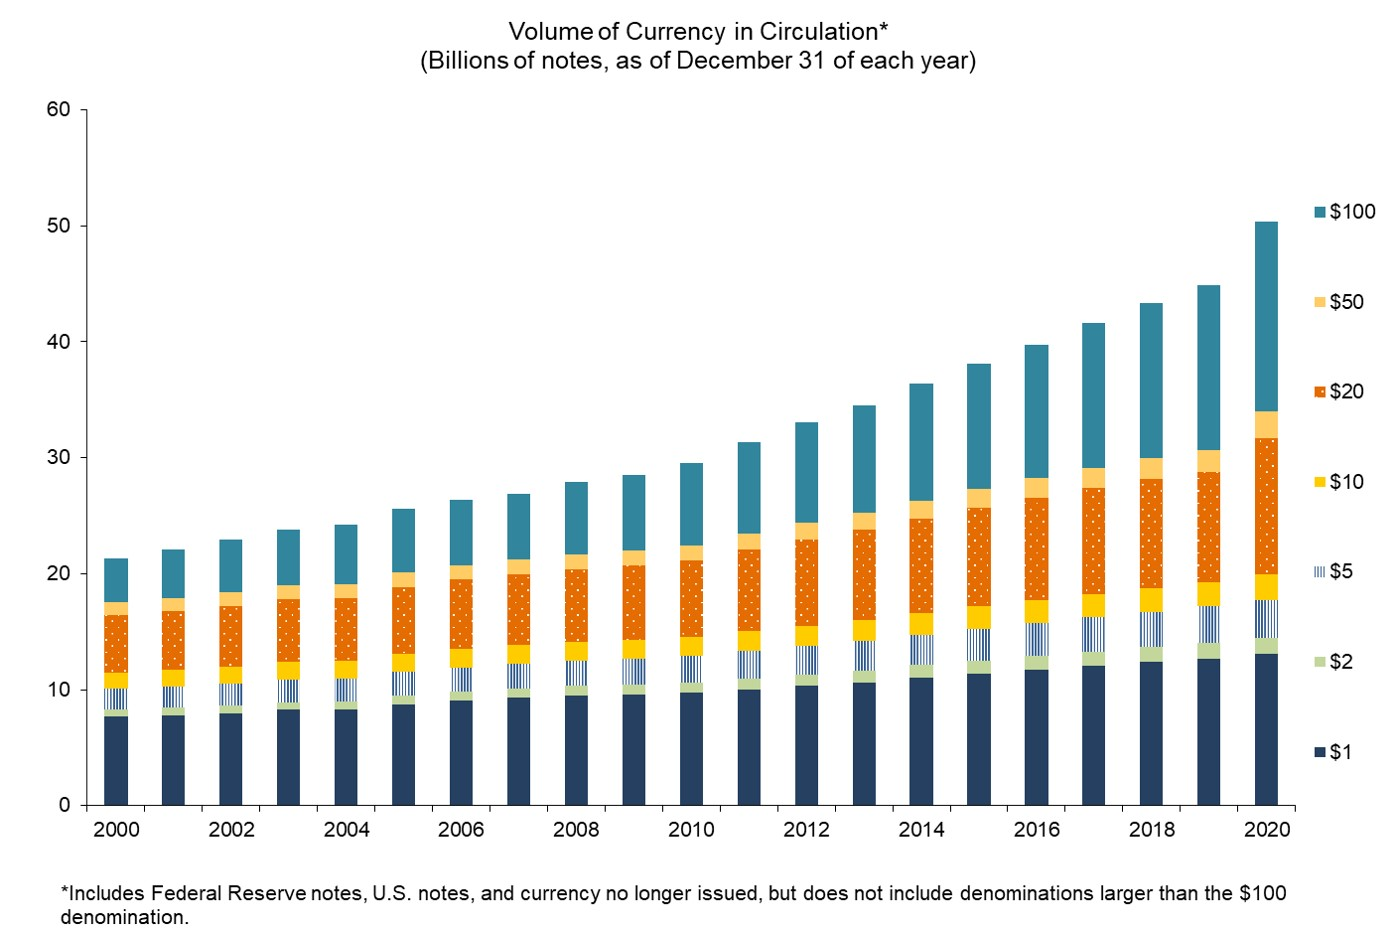 Chart of volume of currency in circulation, excluding denominations larger than the $100 note. Details are in the Data table above.